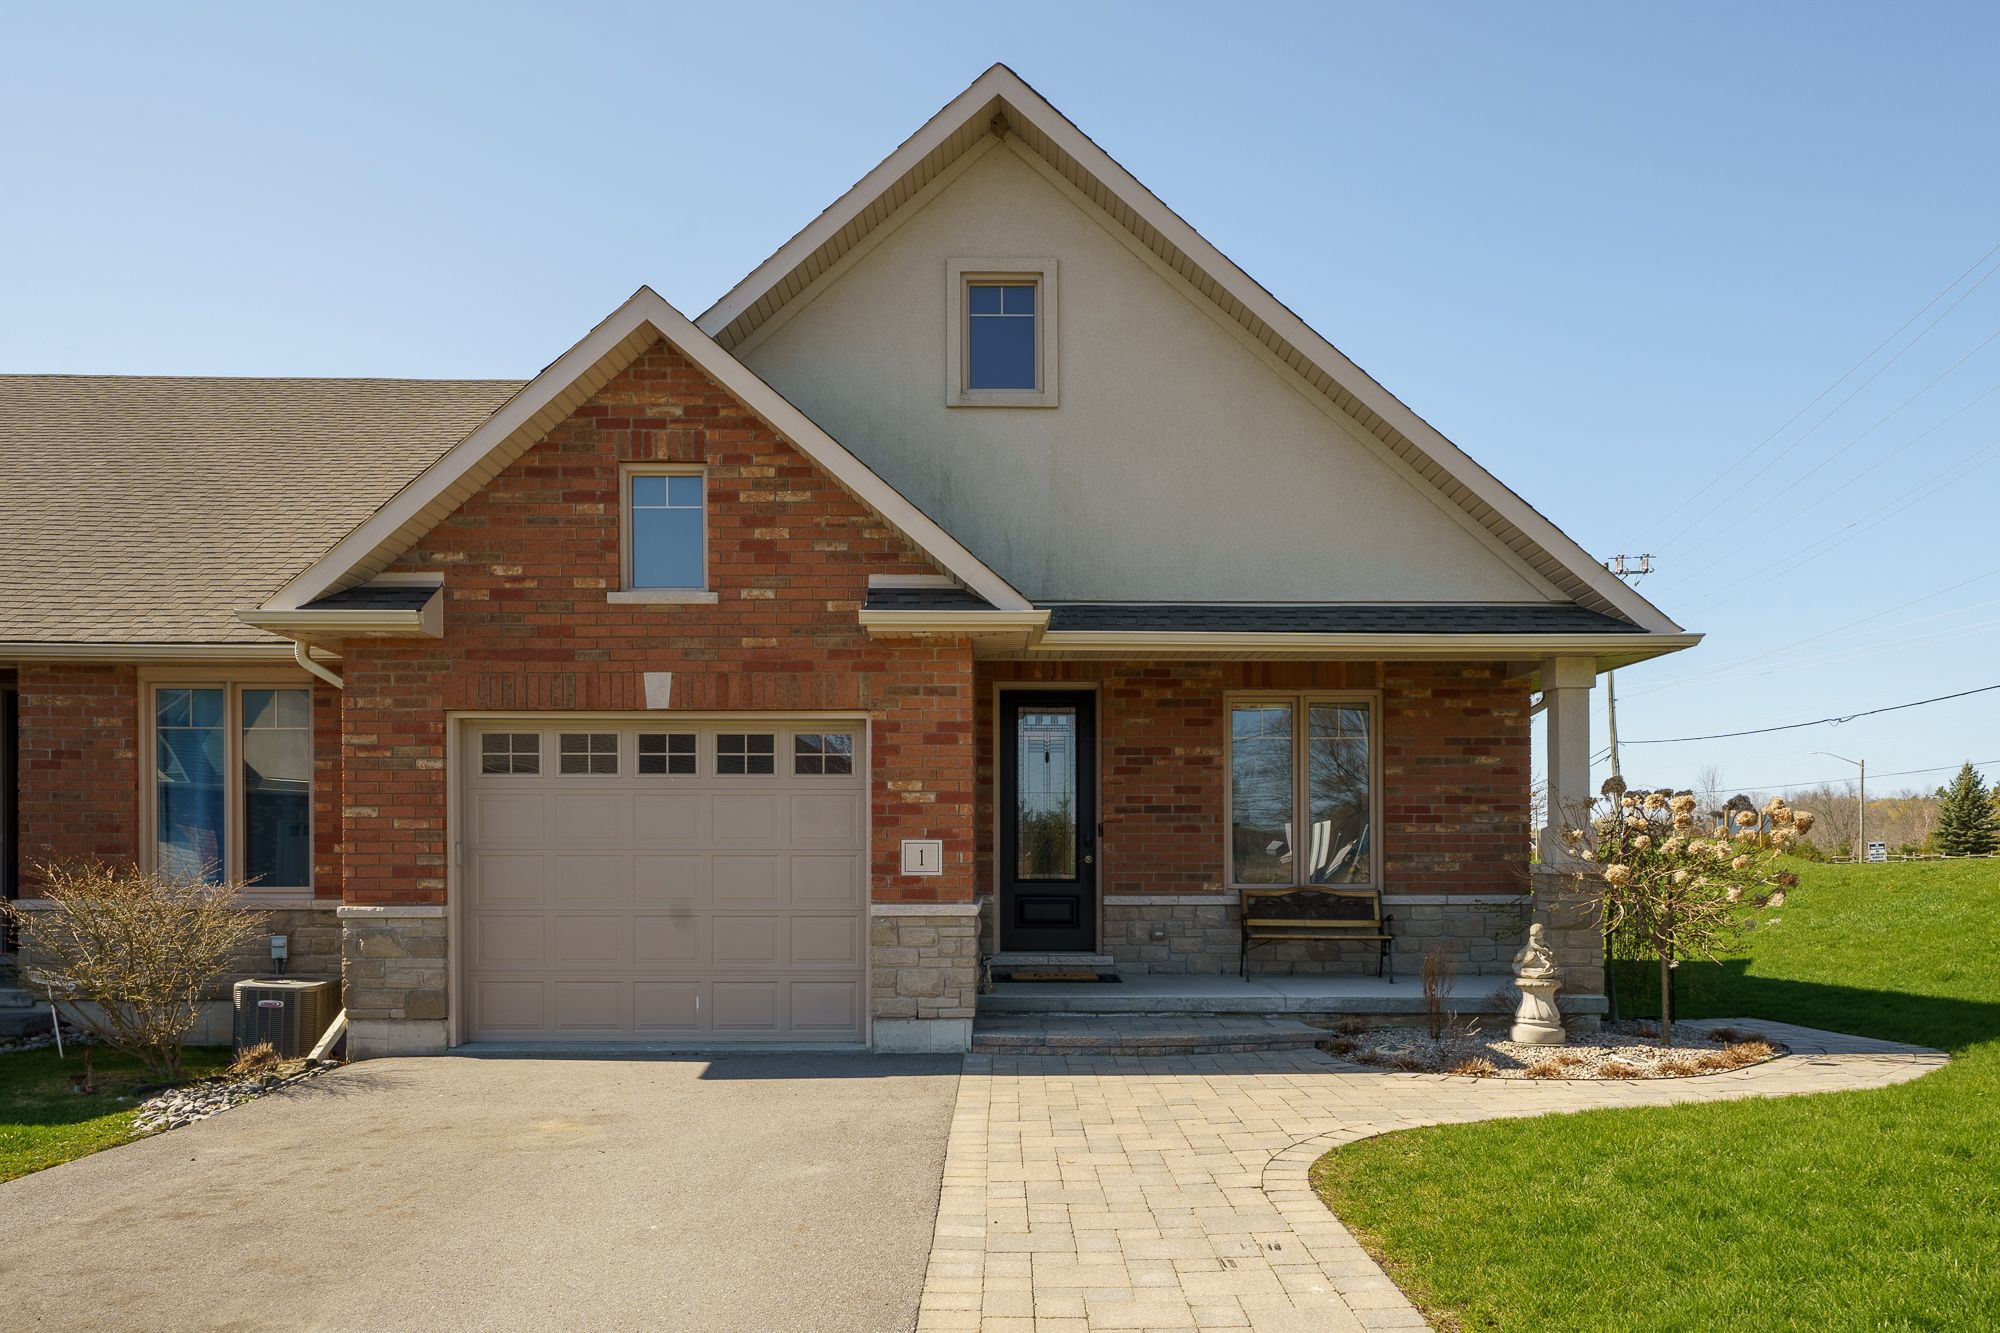 Main Photo: 1 Kingfisher Drive in Quinte West: House for sale : MLS®# 40110092